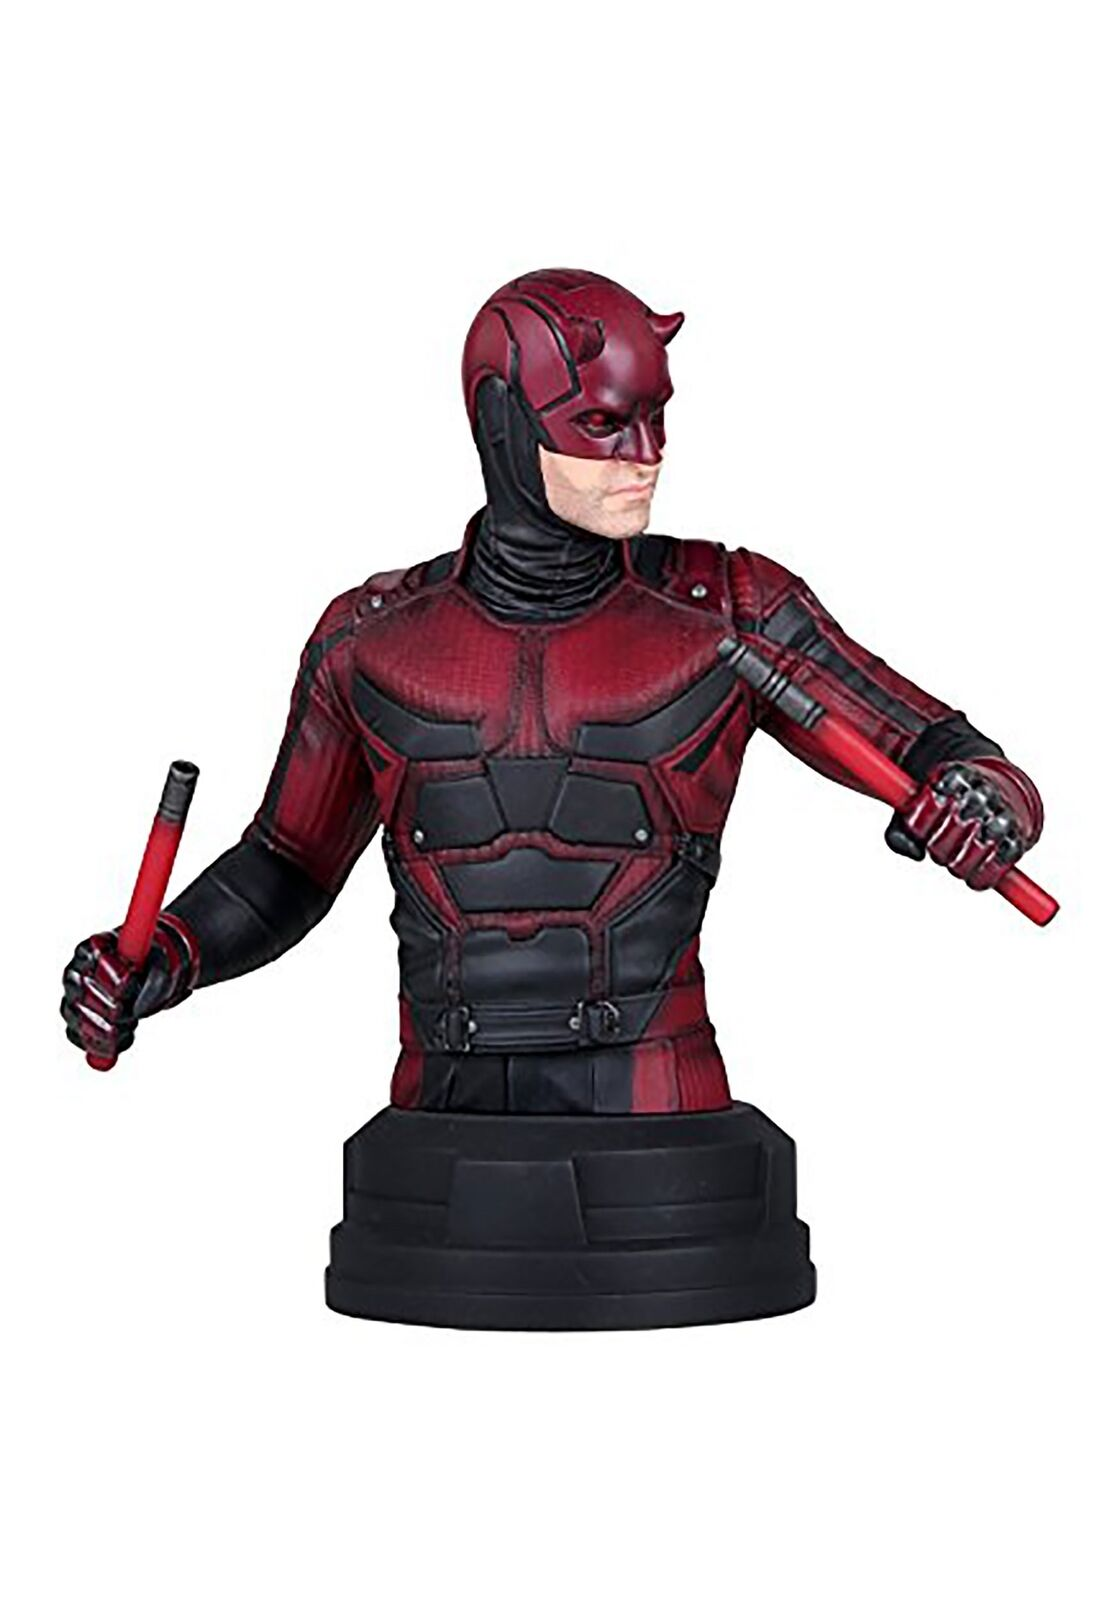 Daredevil Netflix Series Mini Bust